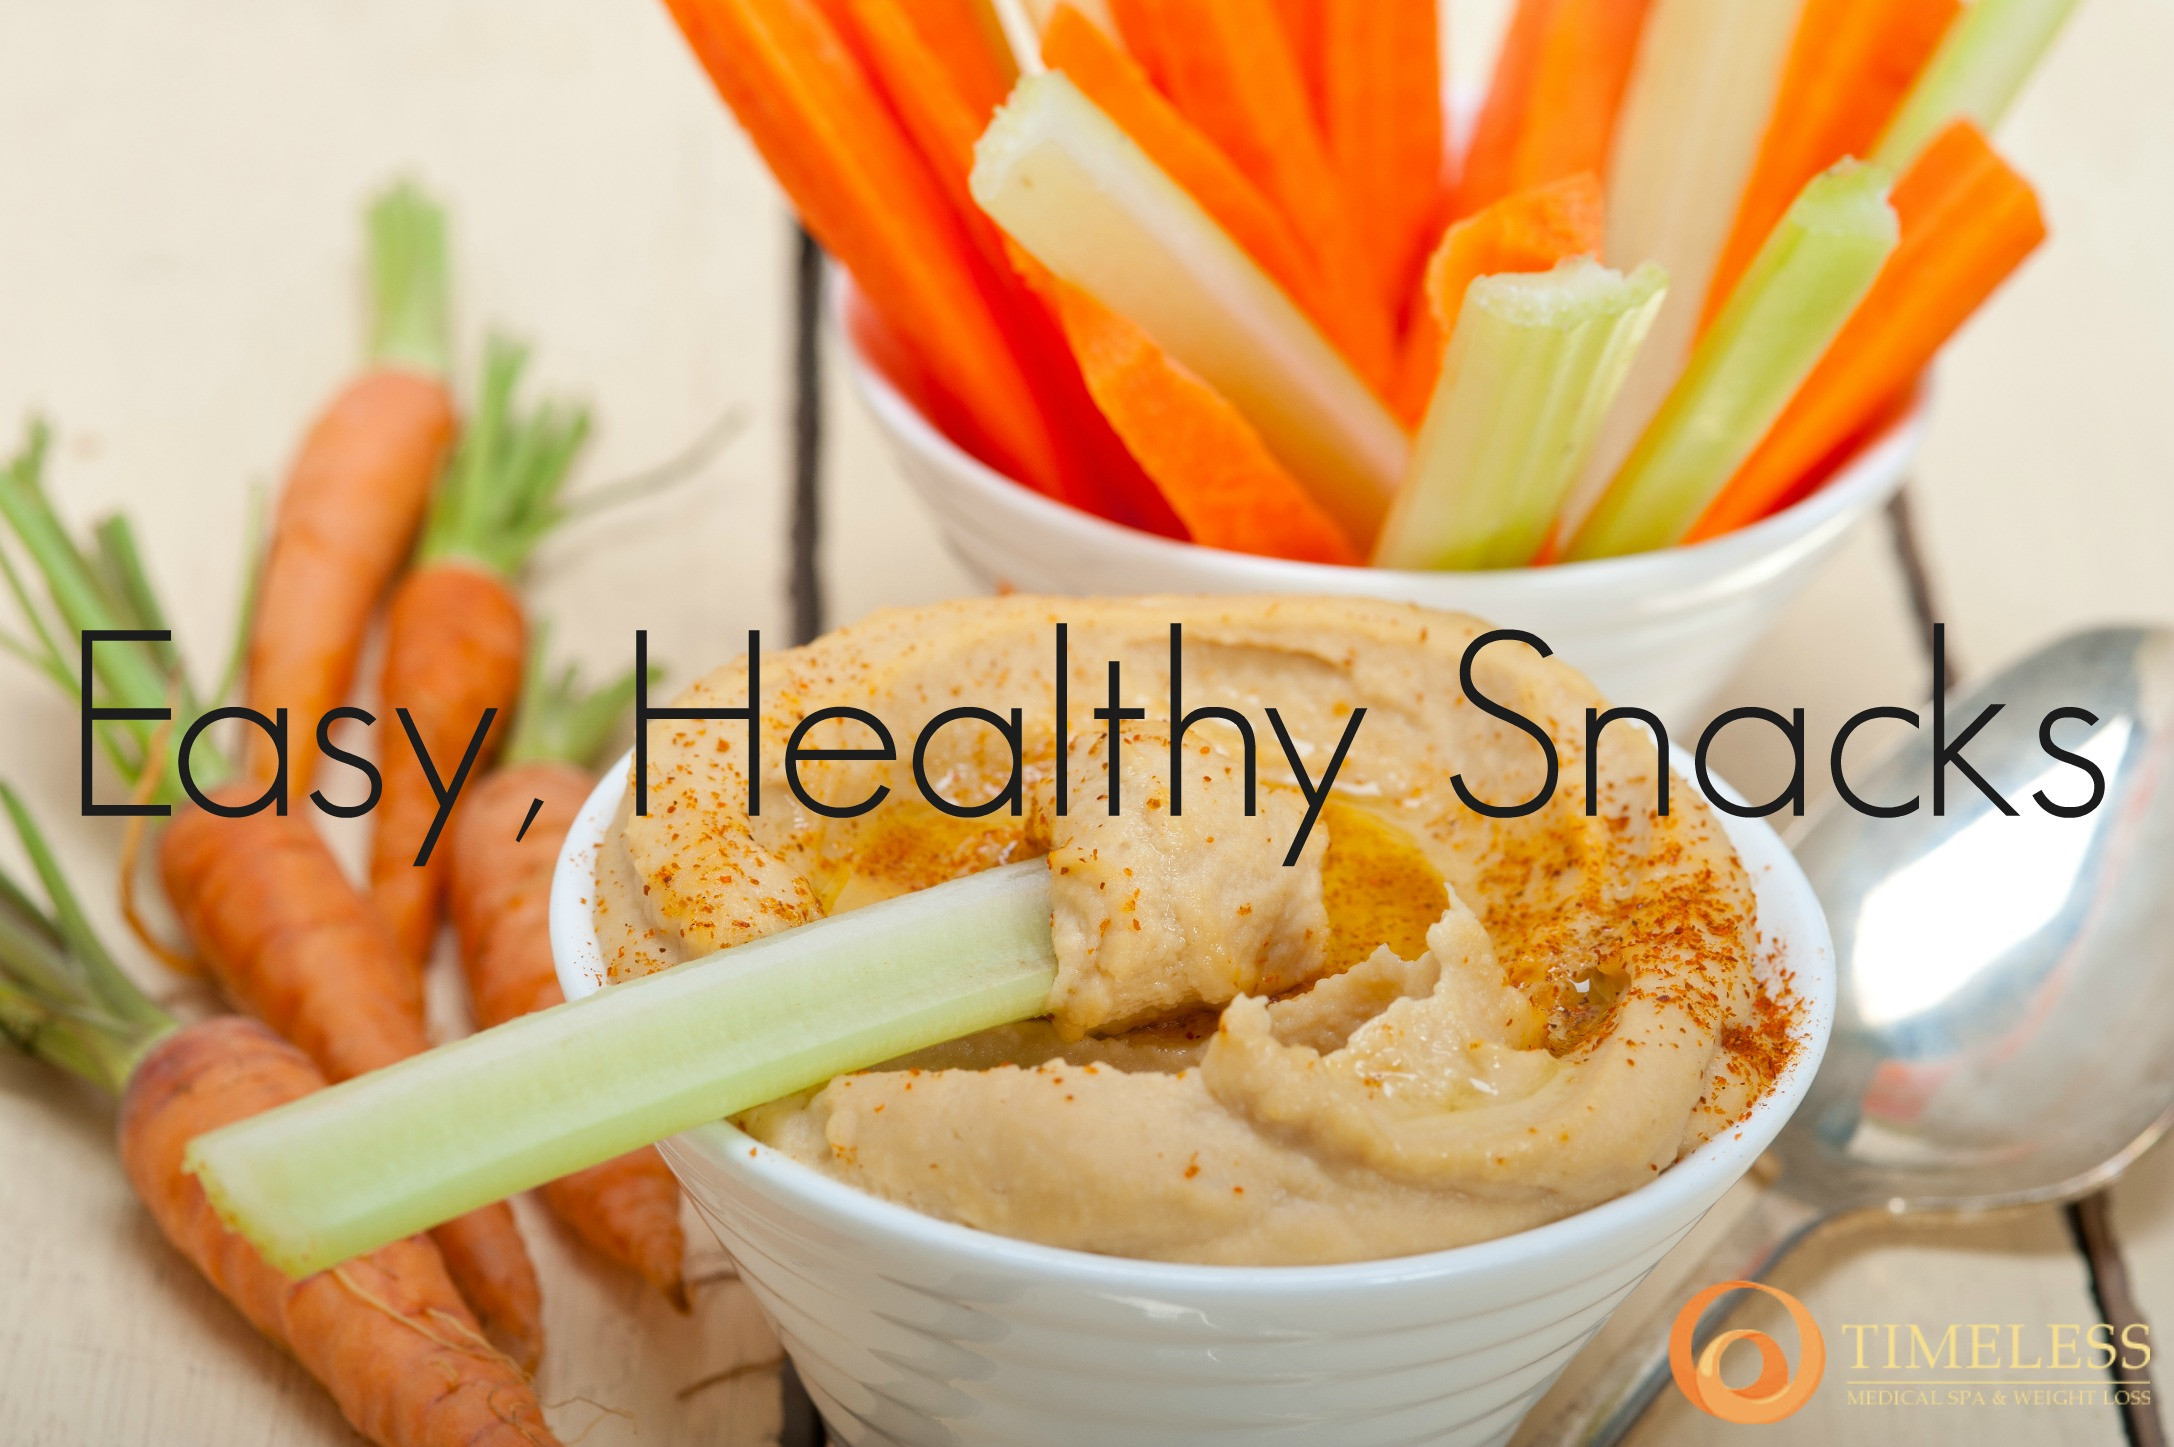 Easy Healthy Snacks  Easy Healthy Snack Ideas TimeLess Weight Loss Blog